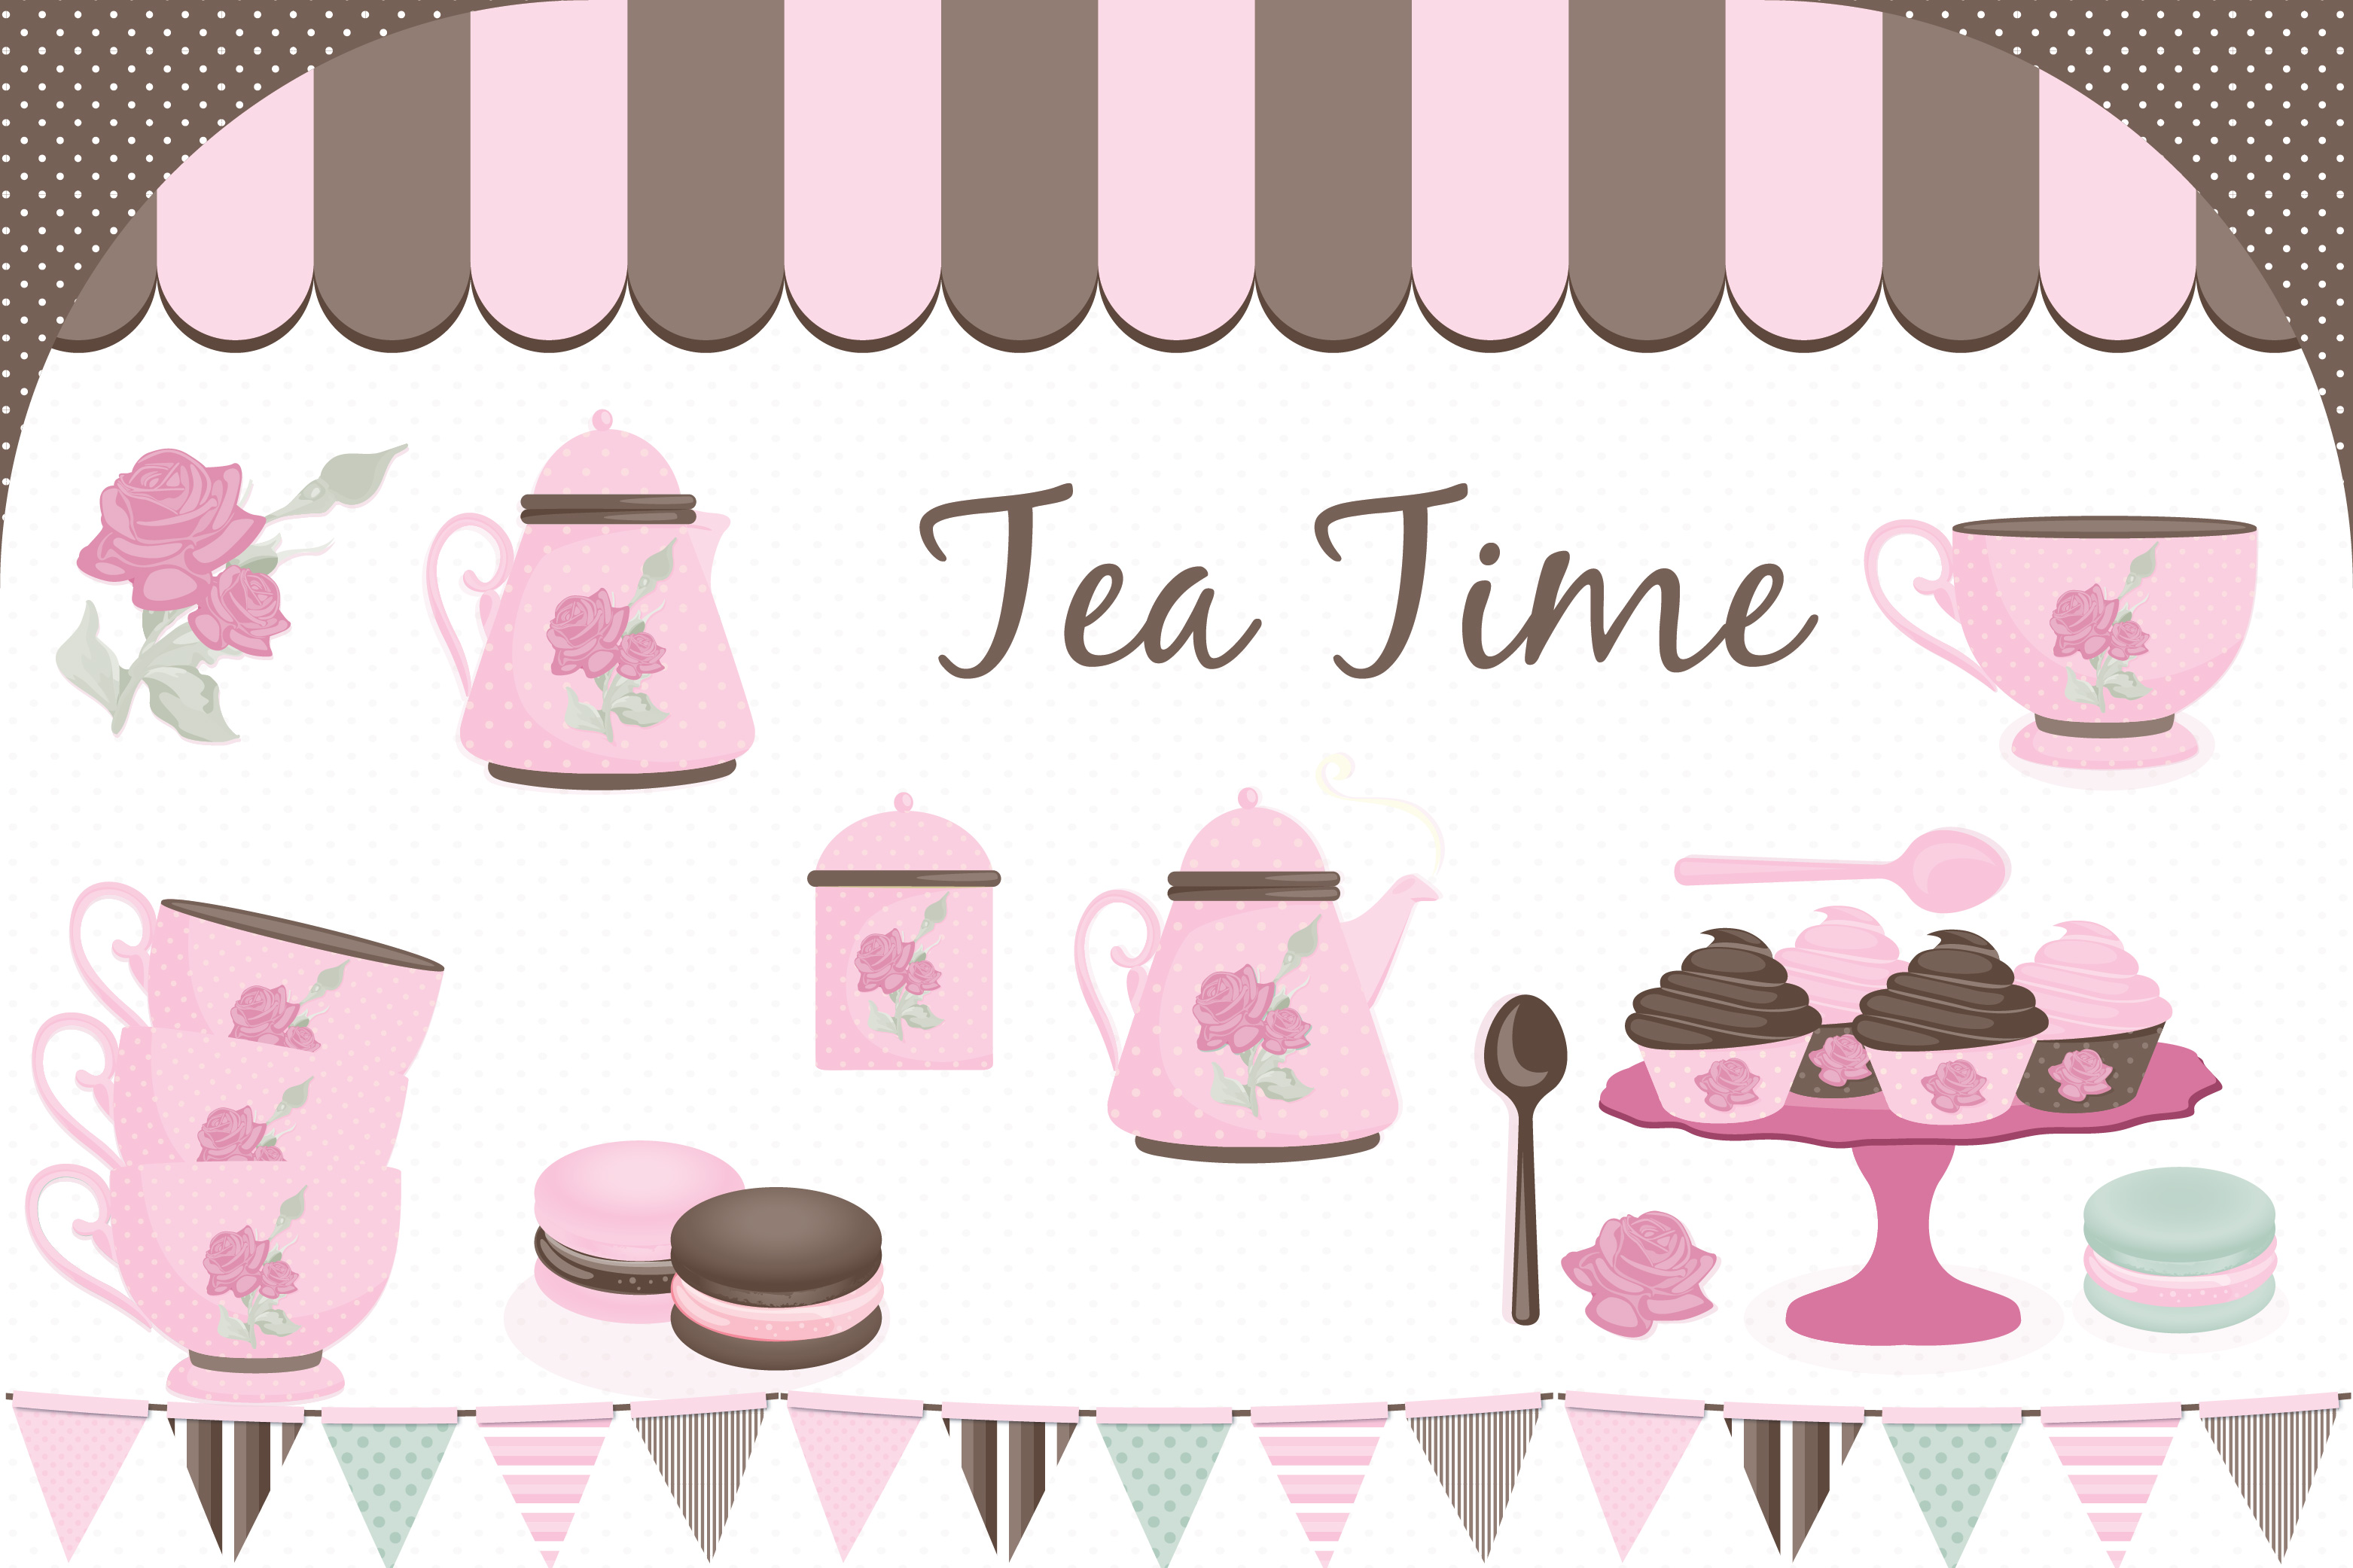 Tea party clipart clipart download Tea party clipart, Tea party graphics clipart download